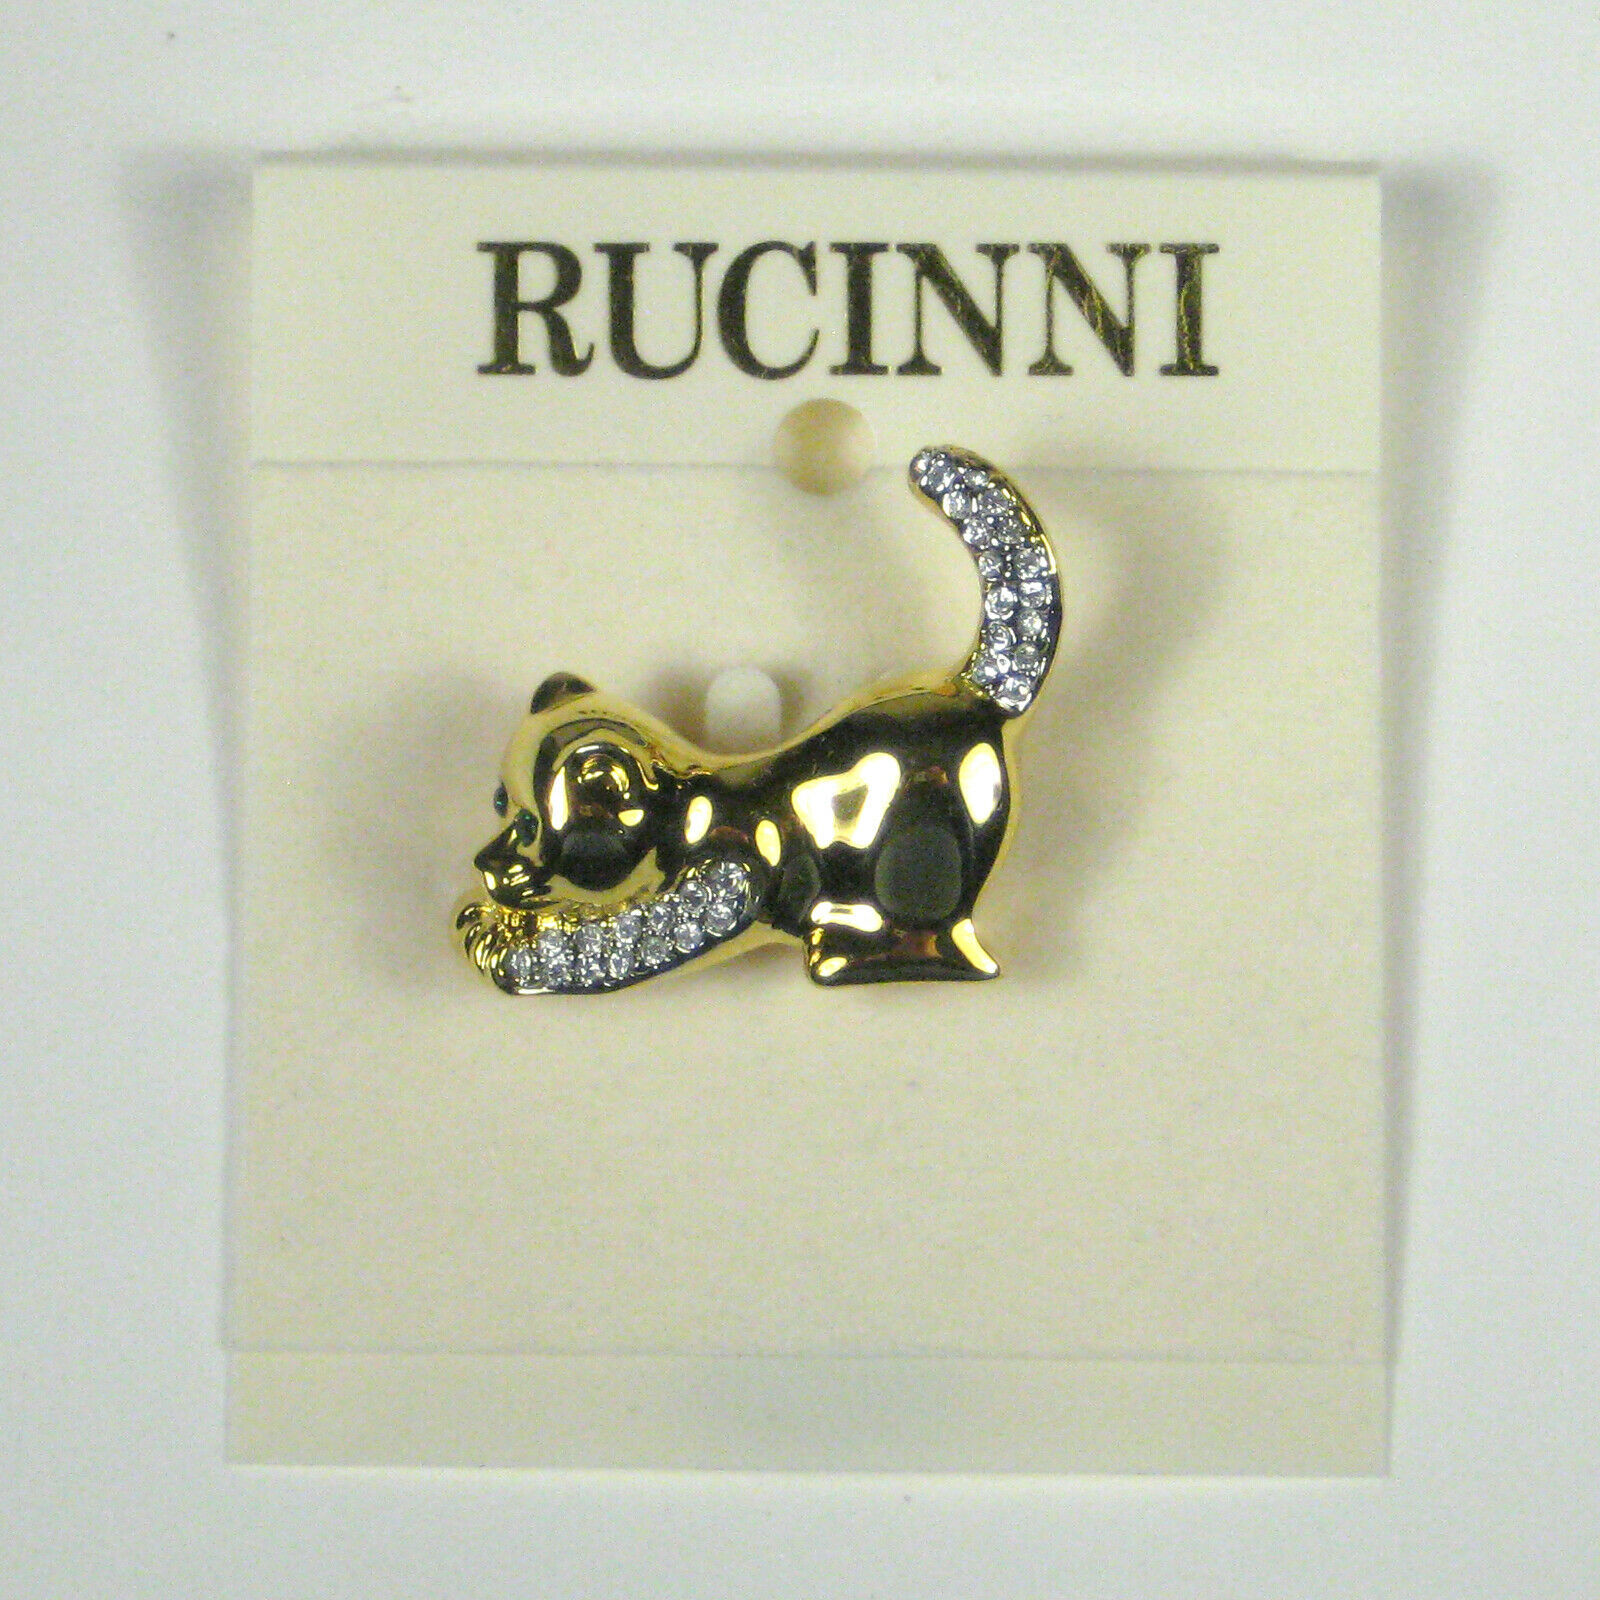 Primary image for NEW Rucinni Cat Jewelry Brooch Pin 1.25 In Goldtone Womens Rhinestones